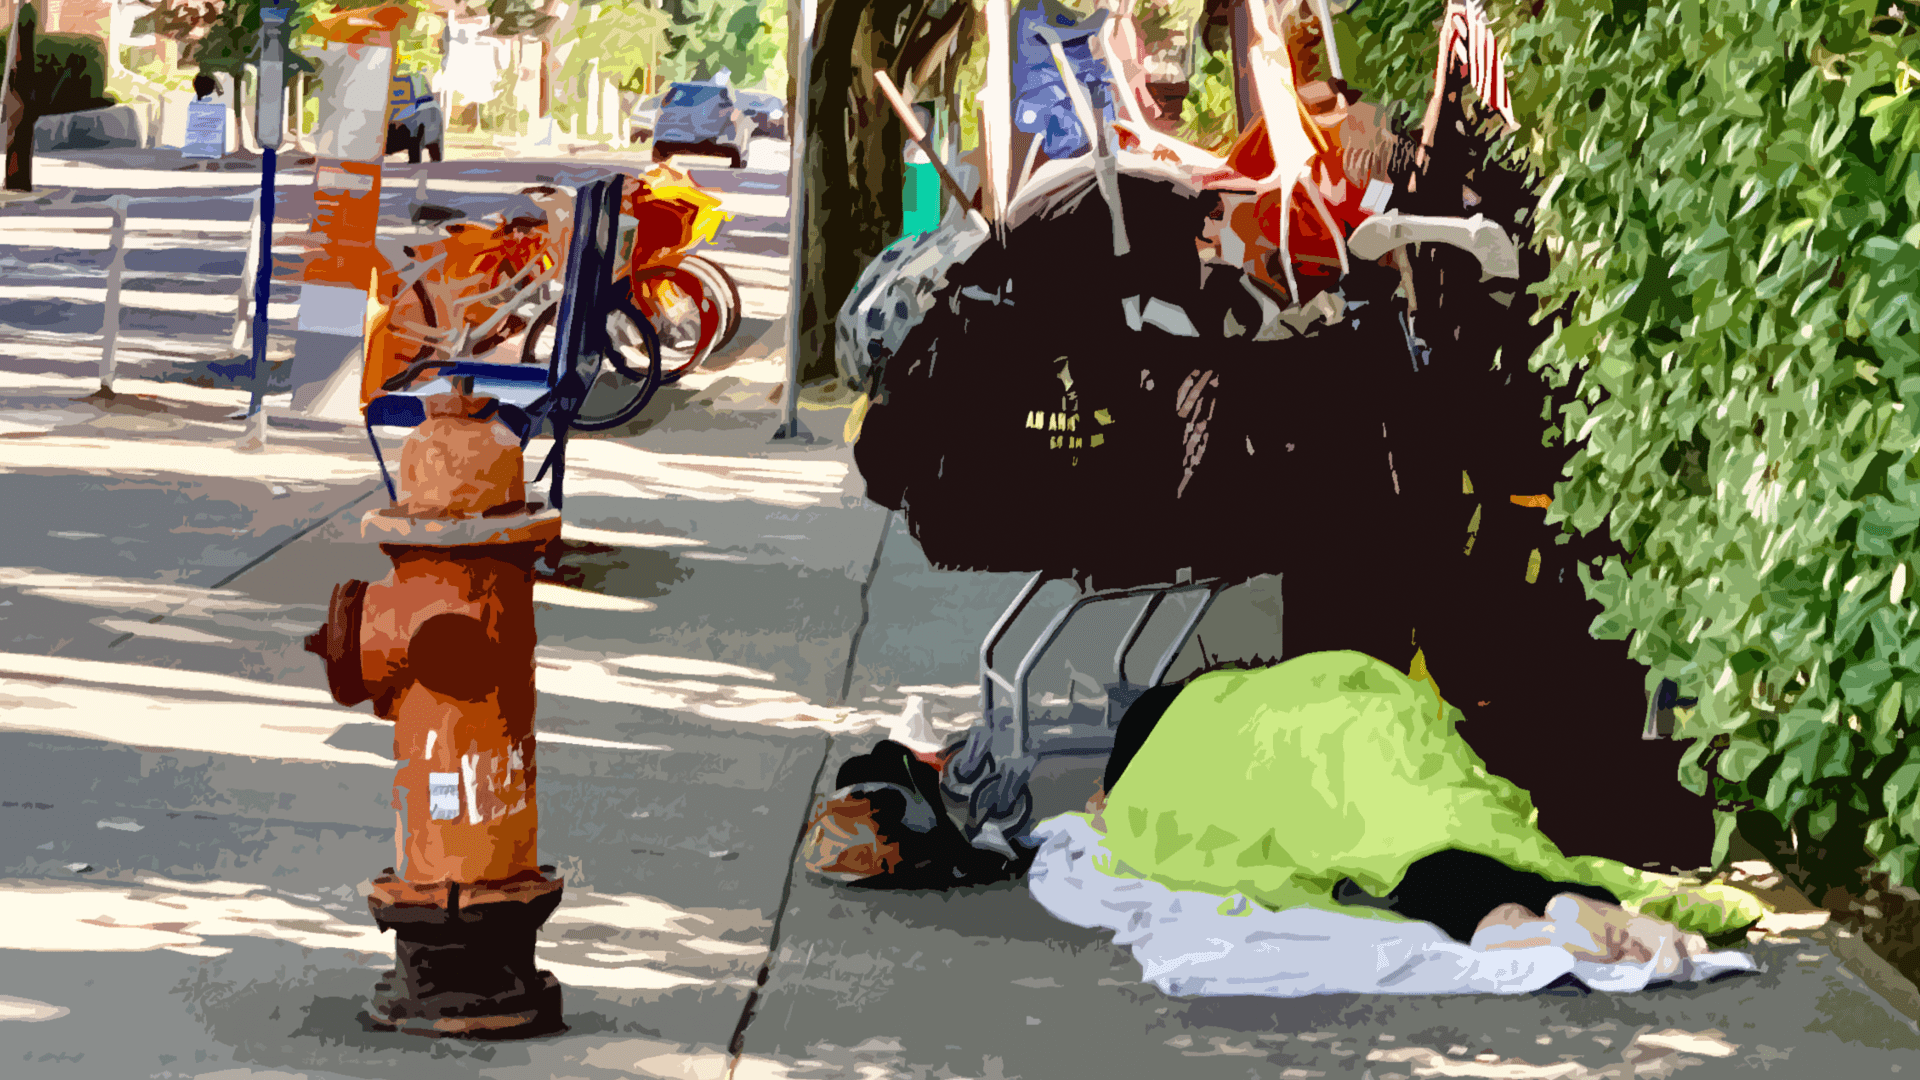 Homelessness in Portland.